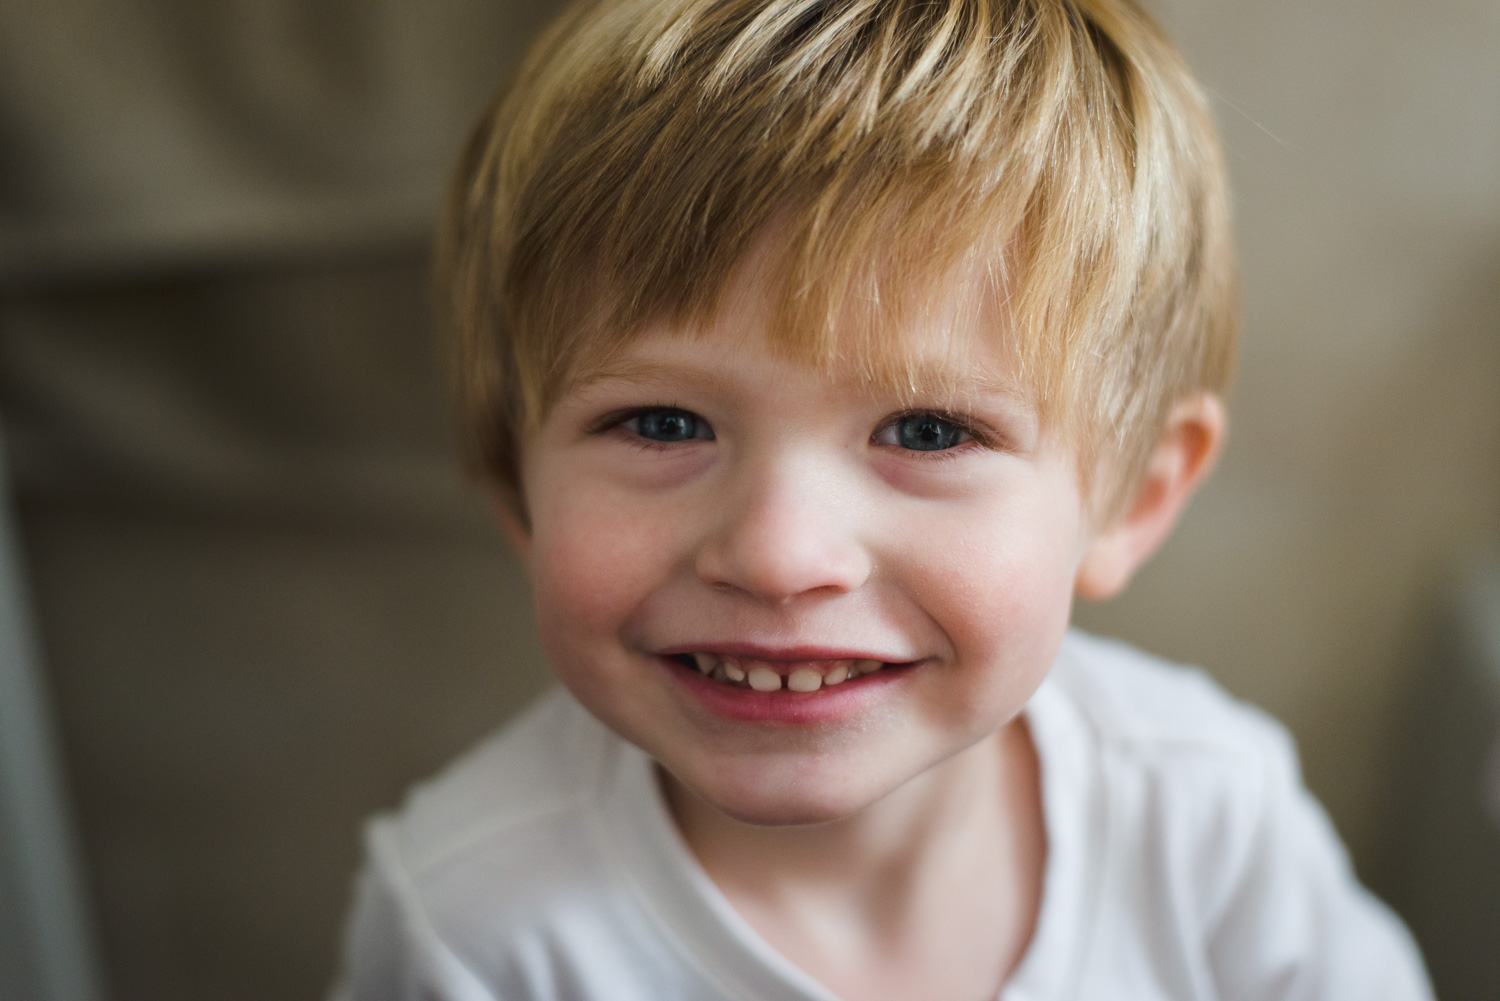 Portrait of a little boy with blonde hair.